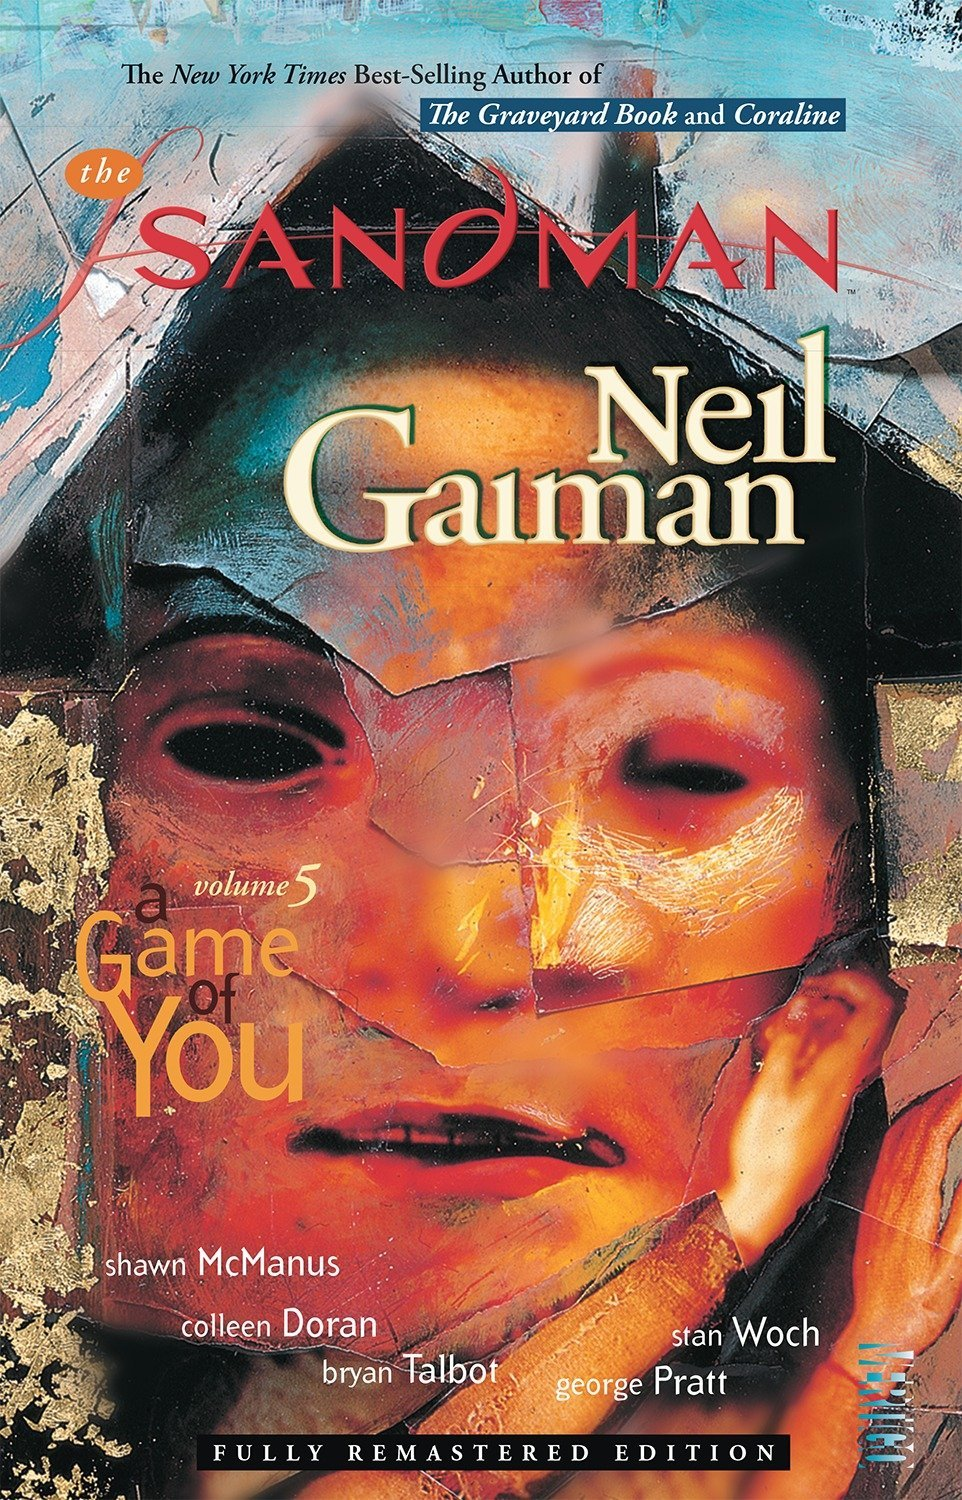 The Sandman, Vol. 5: A Game of You by Neil Gaiman